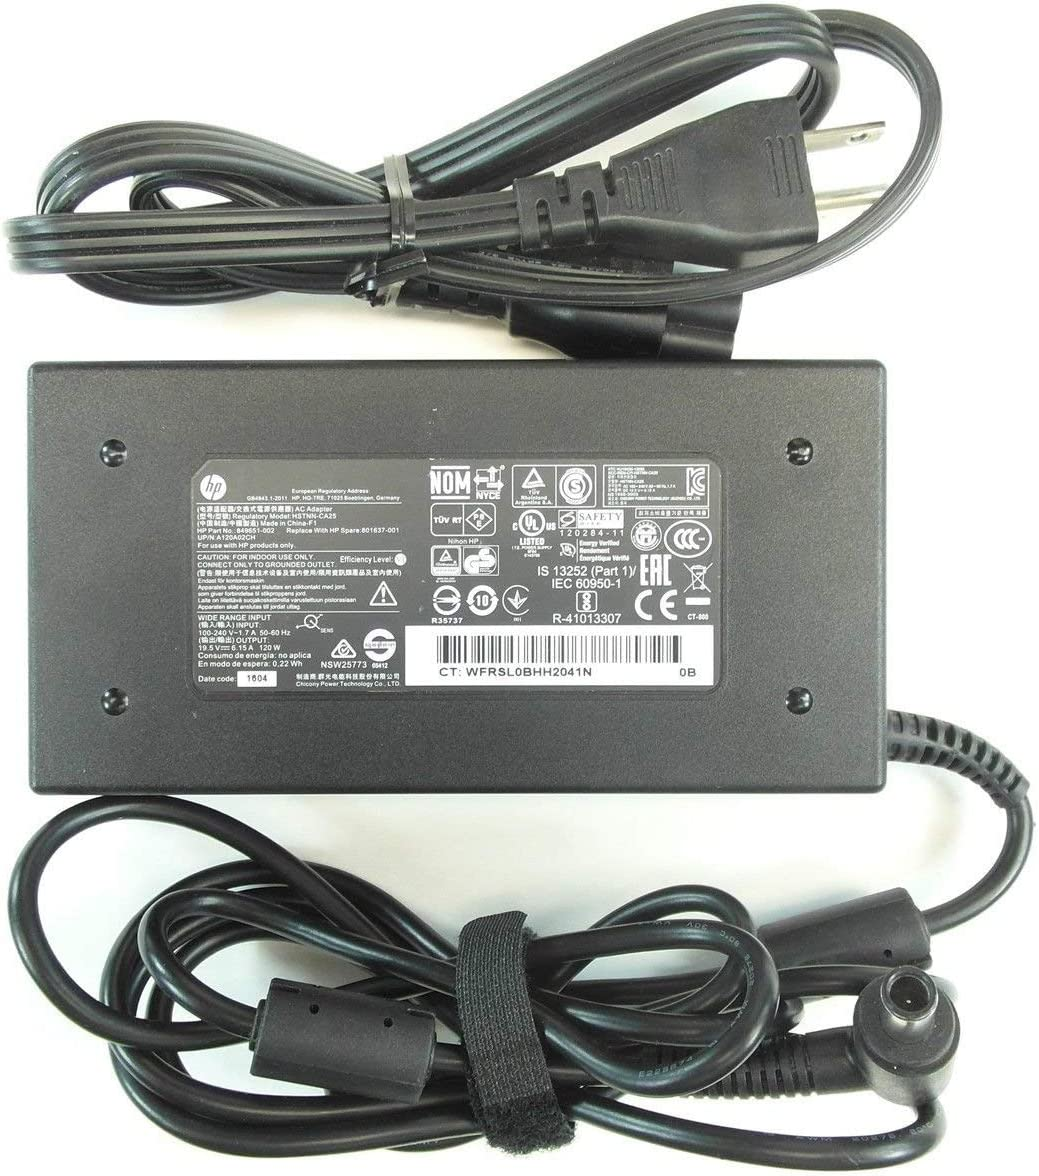 New Genuine HP Envy Pavilion 19.5V 6.15A 120W Smart Pin AC Adapter HSTNN-CA25 730982-002 (Renewed)